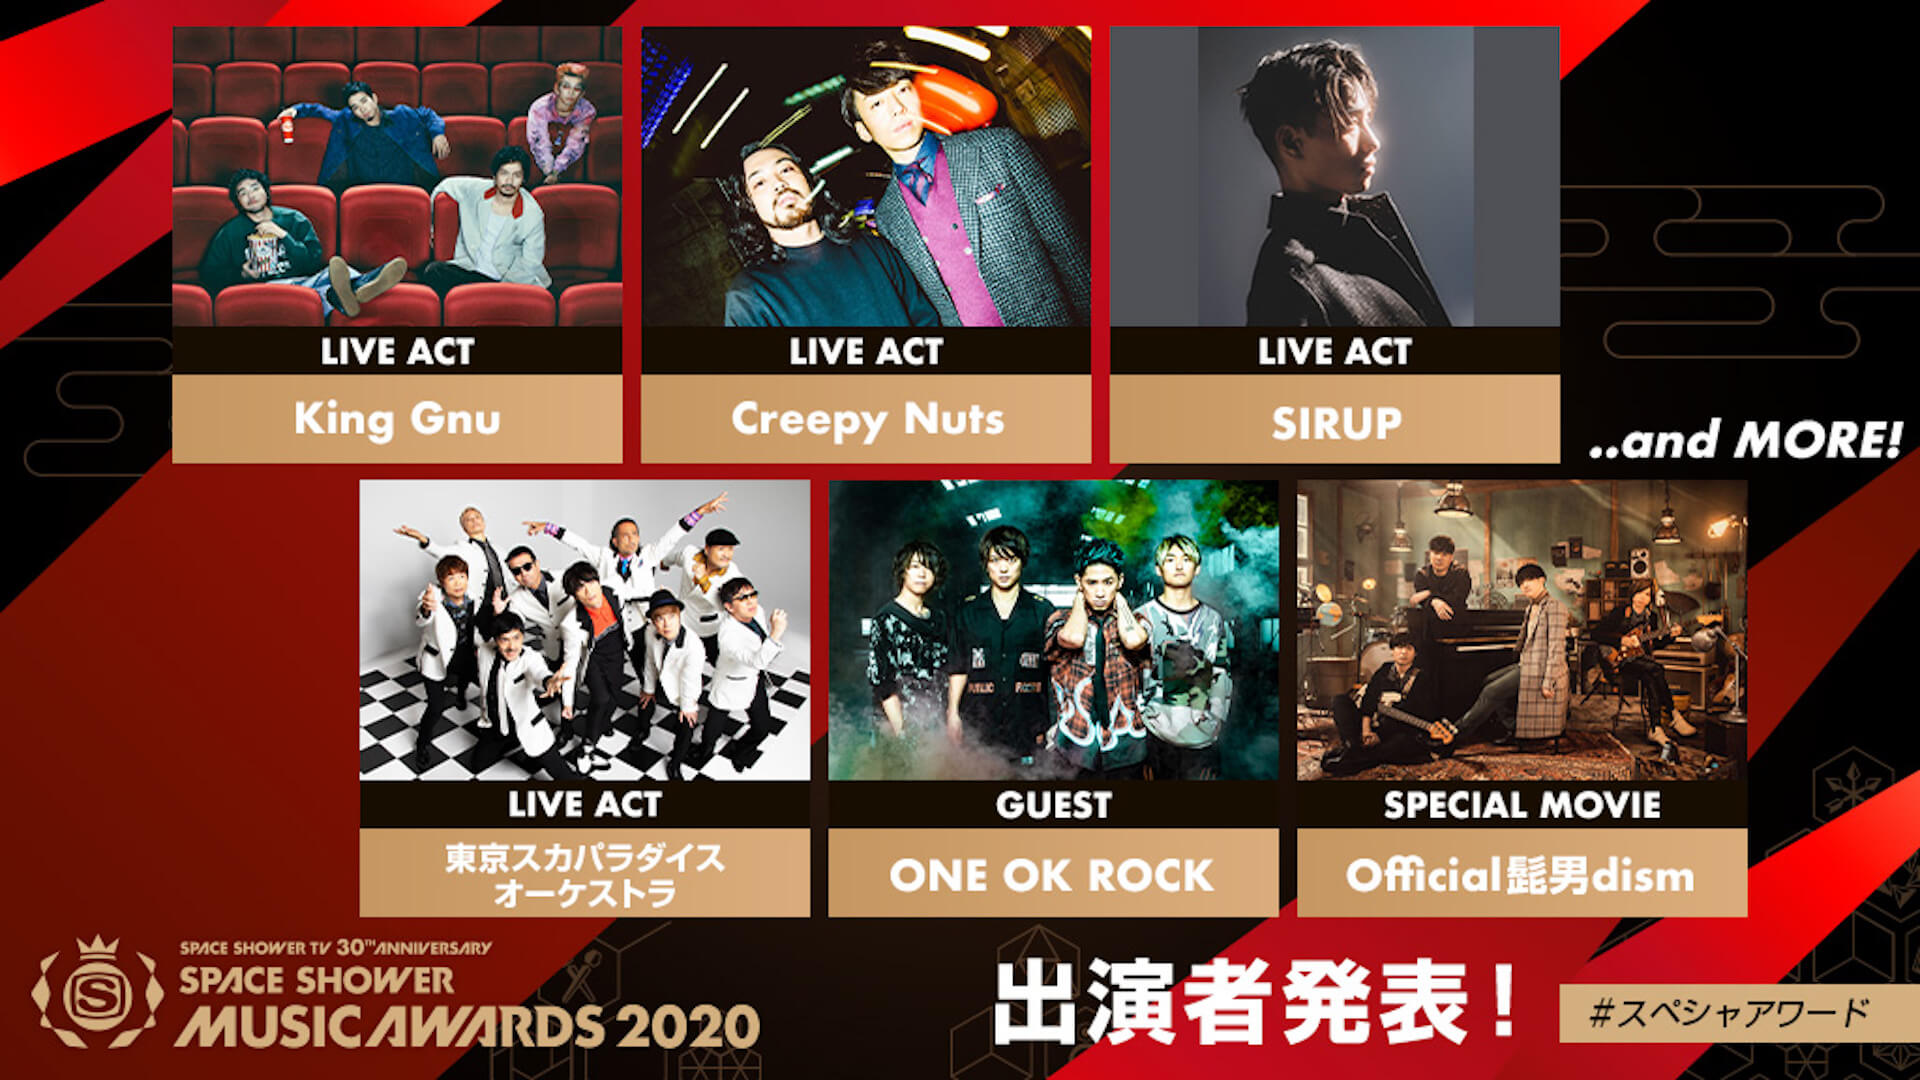 King GnuにSIRUPに、Official髭男dism!『SPACE SHOWER MUSIC AWARDS 2020』出演ラインナップが発表 music200123_ssma_1